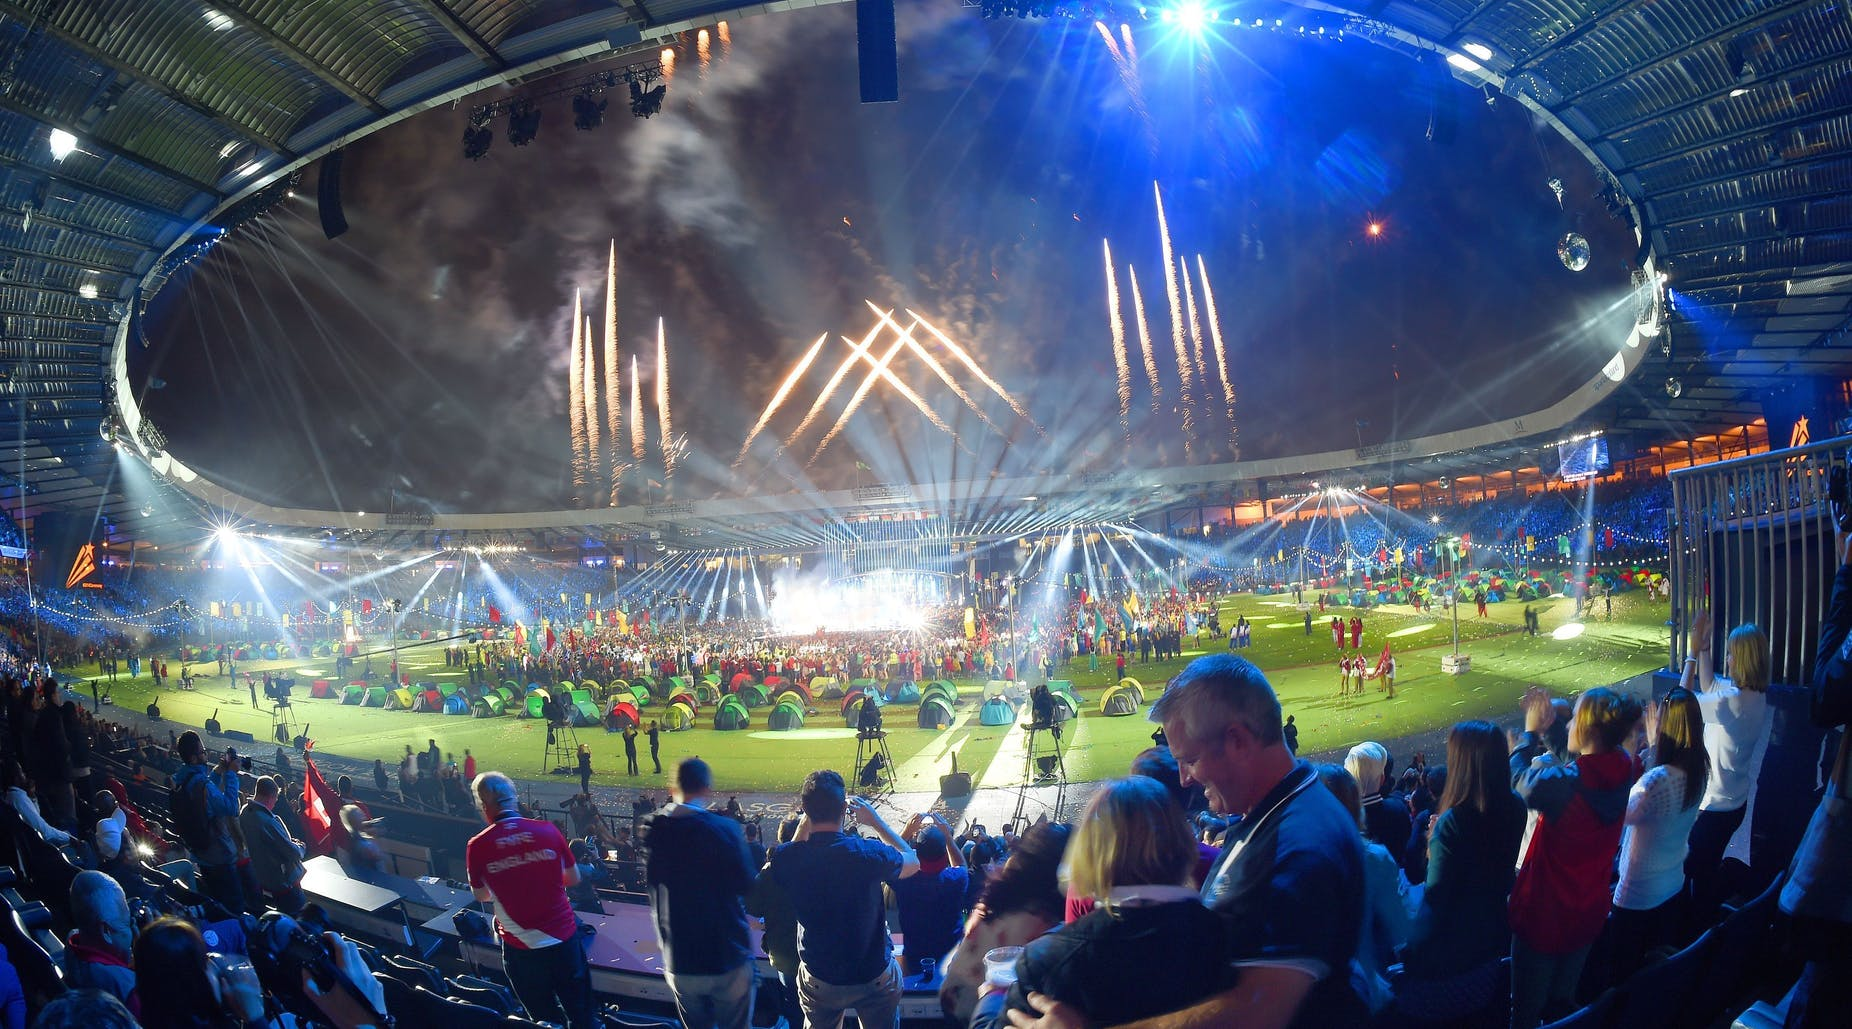 2014 commonwealth games an overview